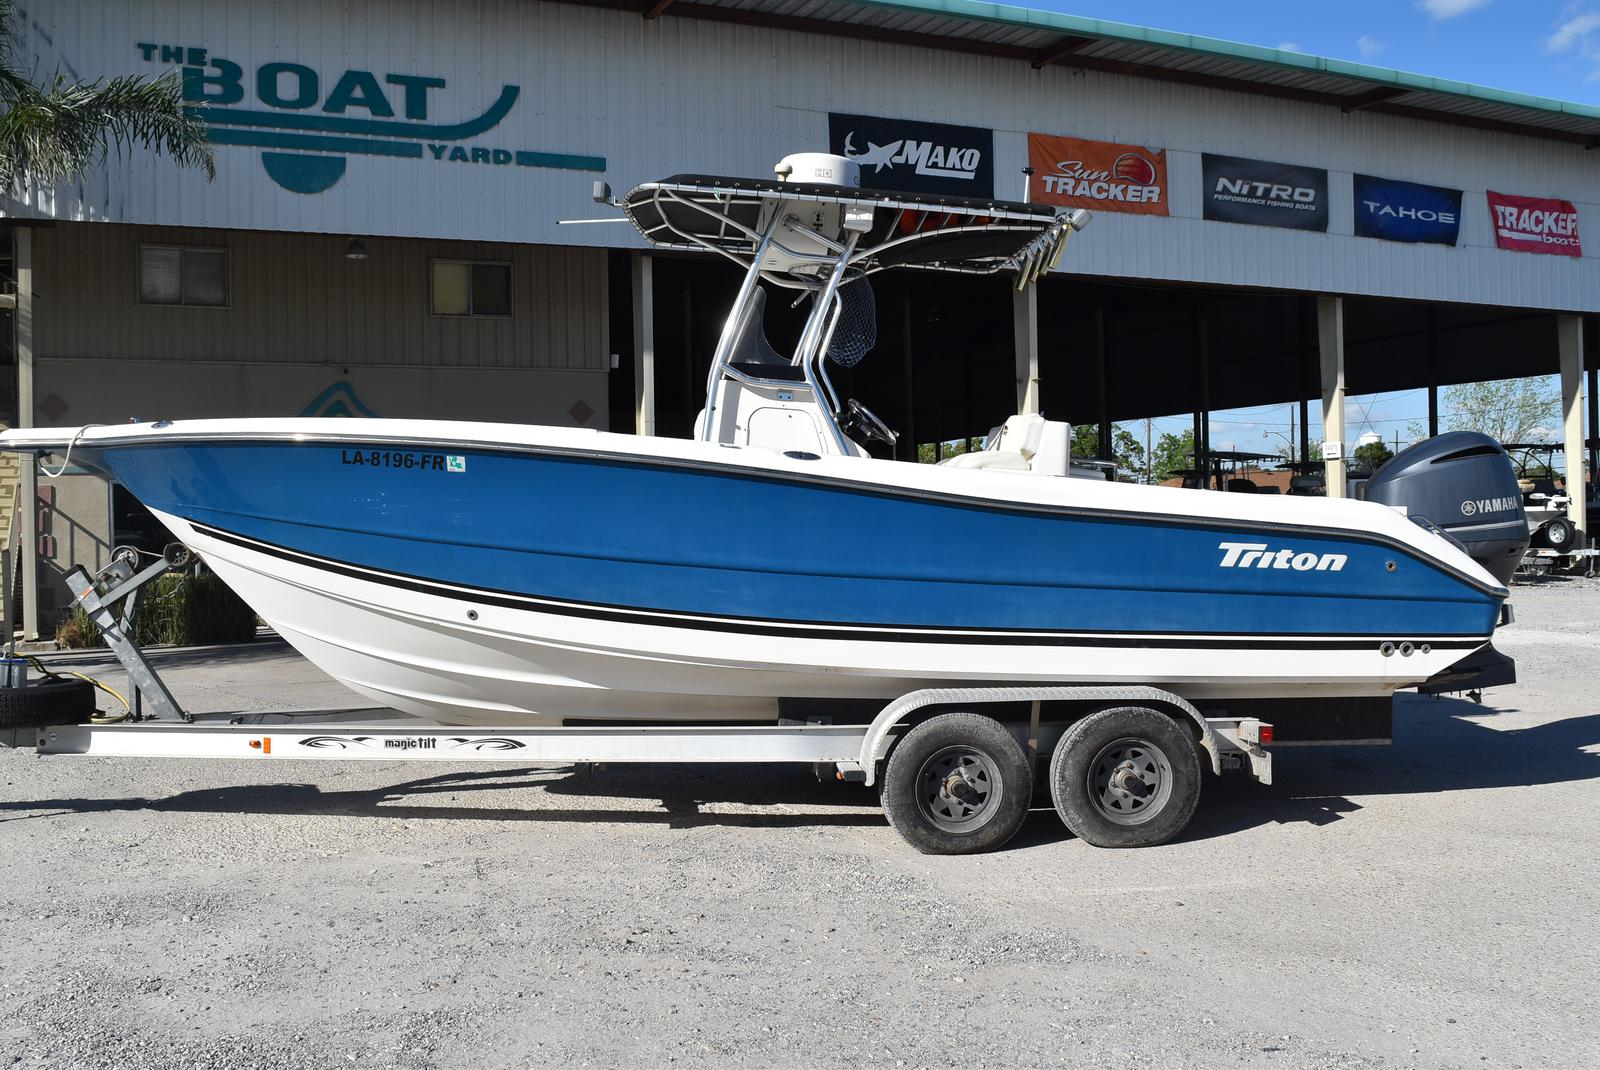 2006 Triton boat for sale, model of the boat is 2486 & Image # 14 of 24